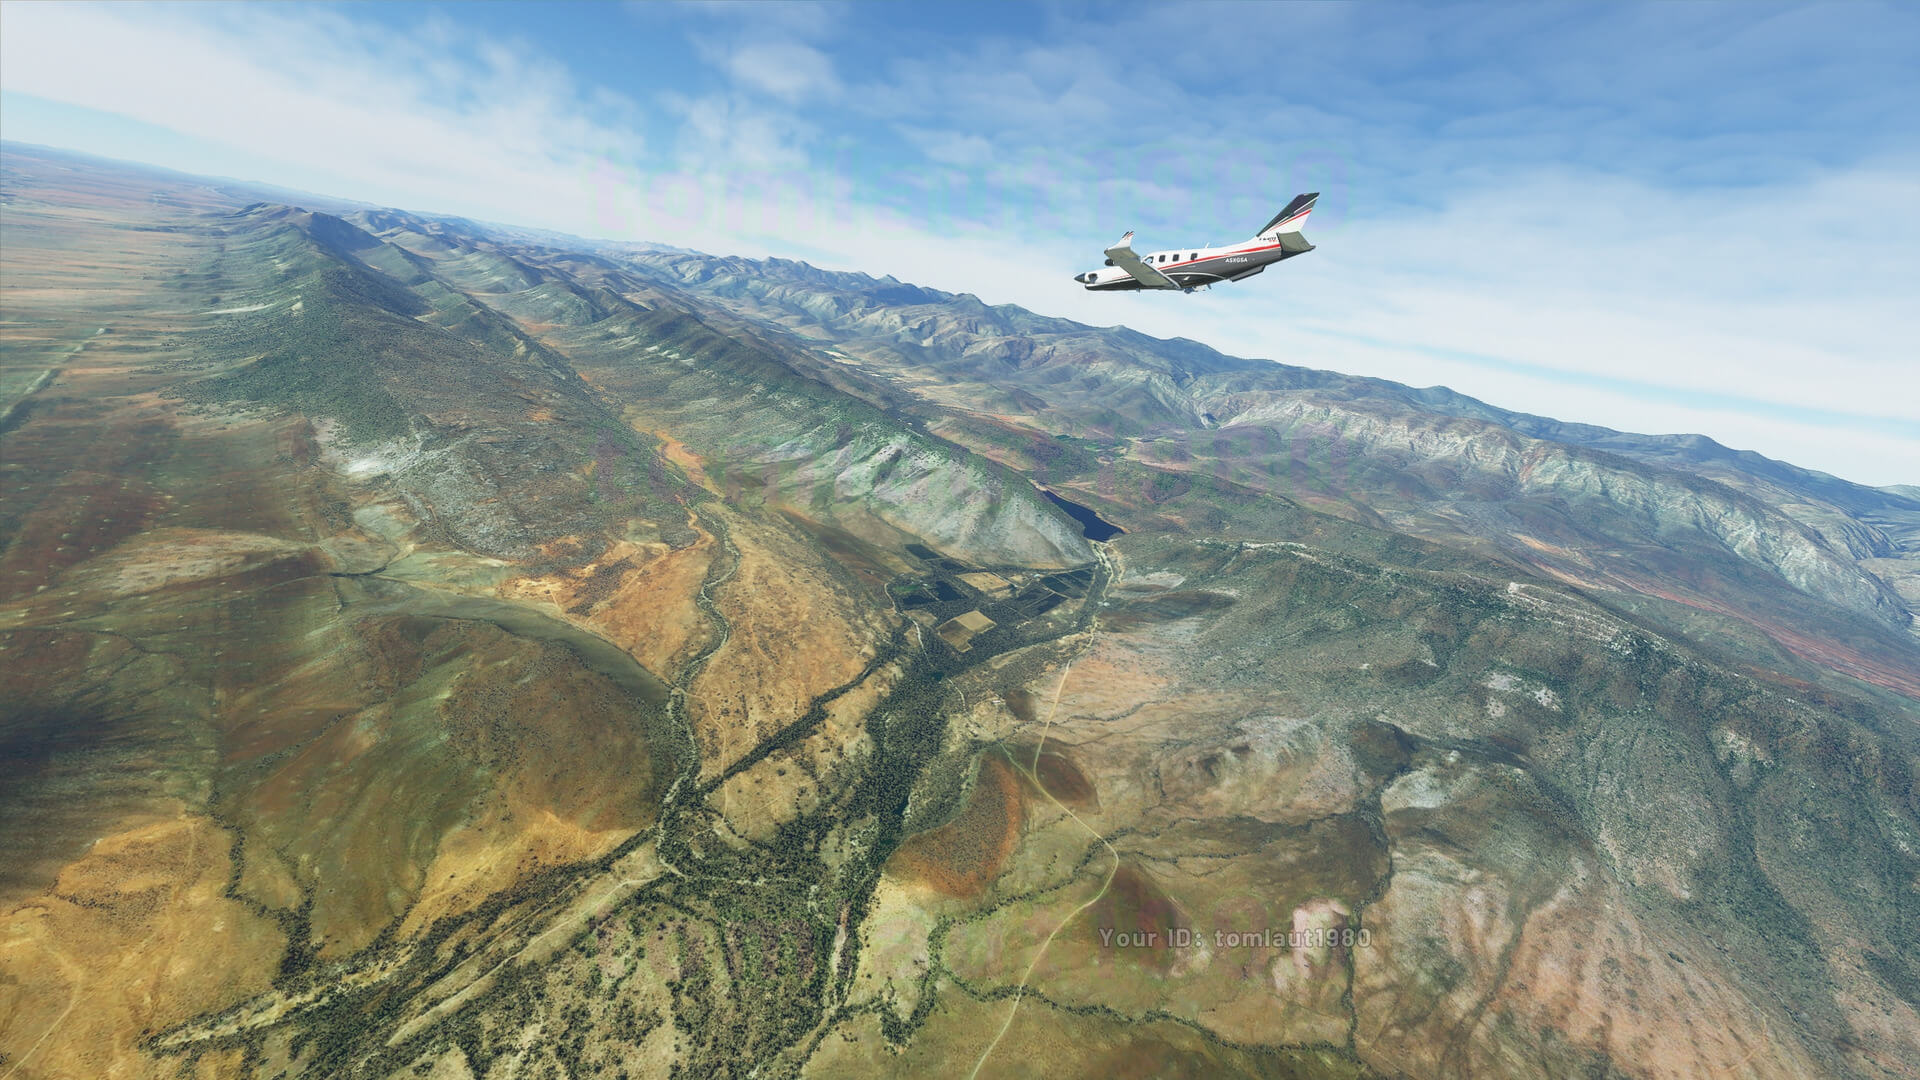 Microsoft Flight Simulator captura 4 paisaje